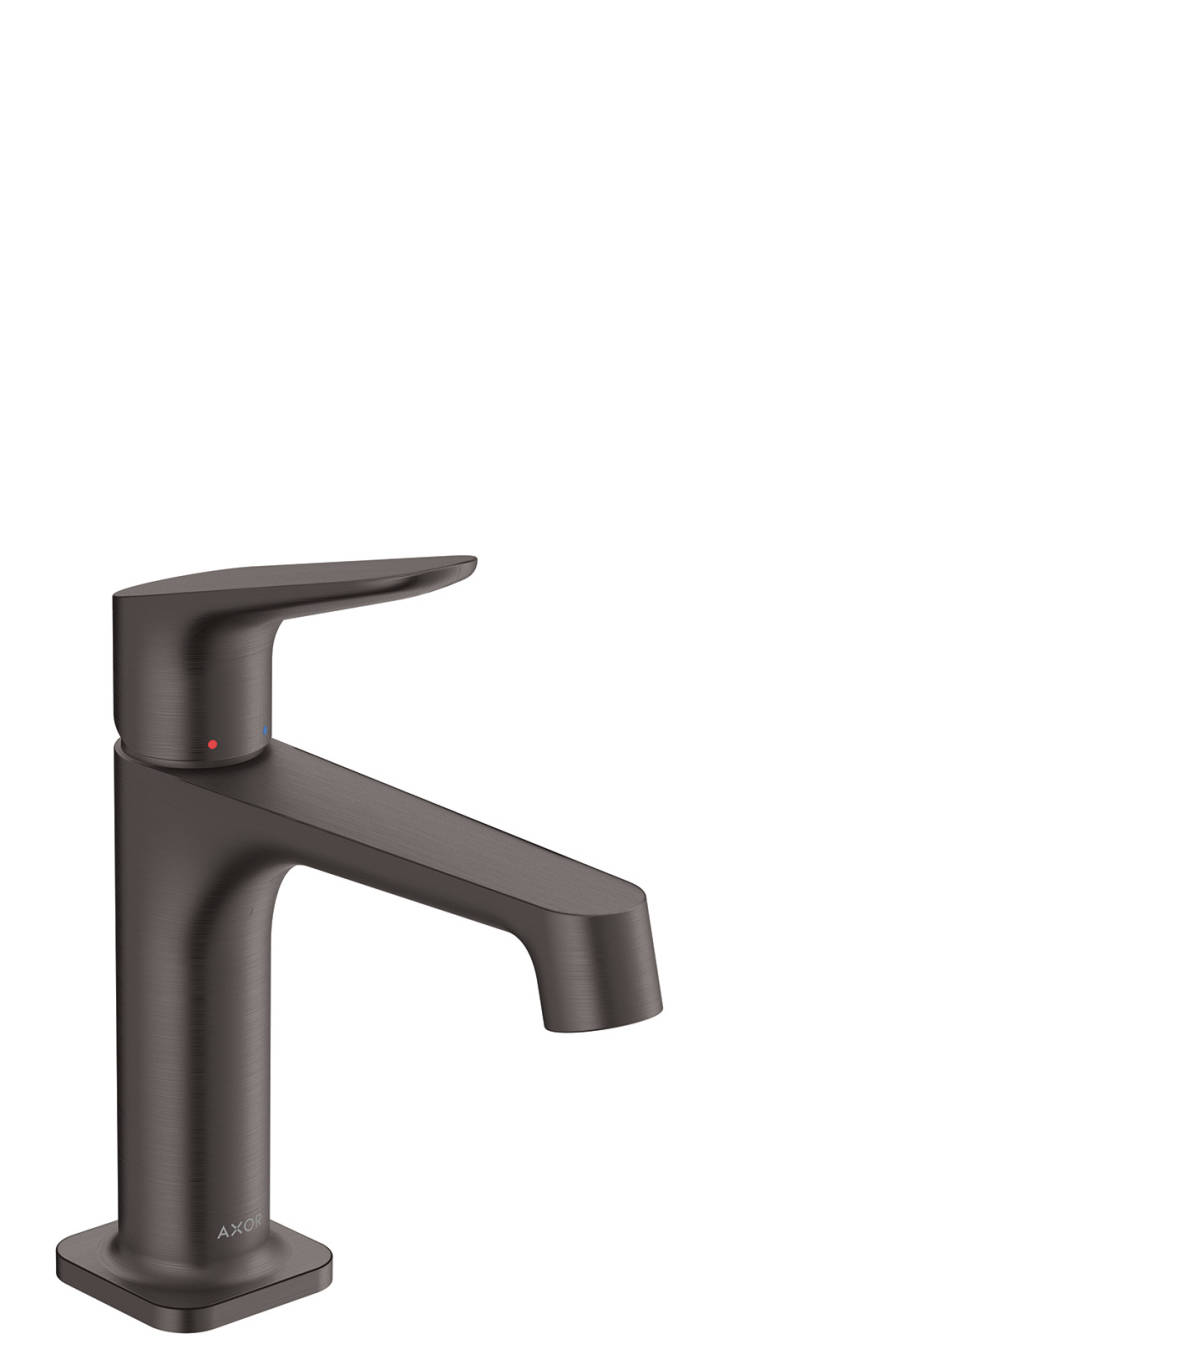 Single lever basin mixer 100 with waste set, Brushed Black Chrome, 34017340